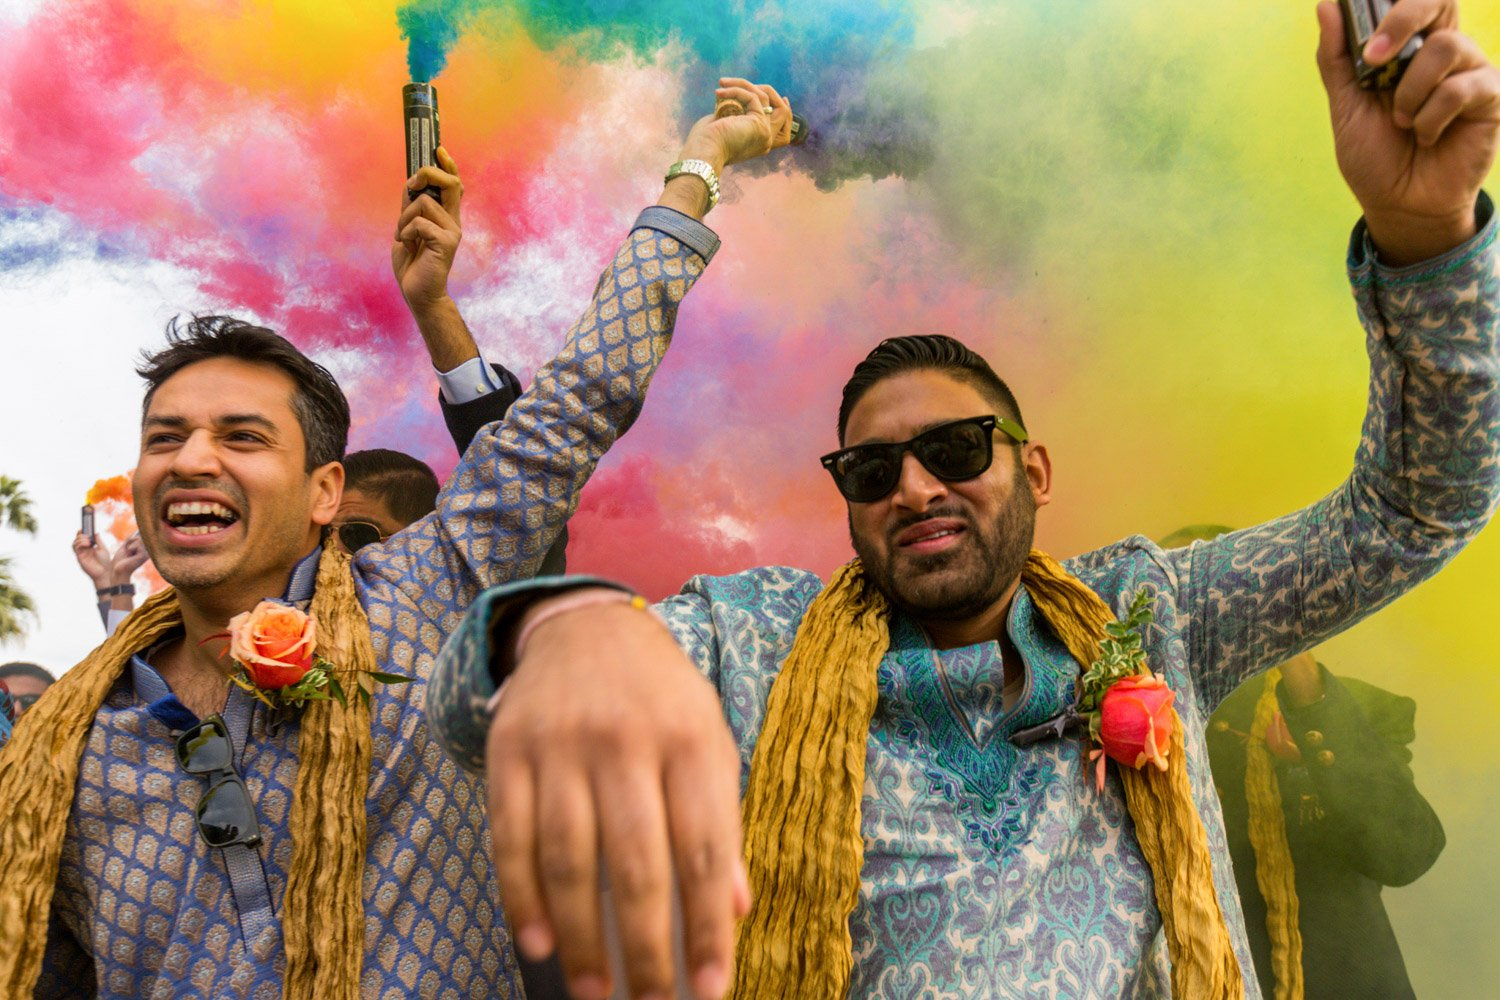 What's a baraat? Colorful baraat wedding photography